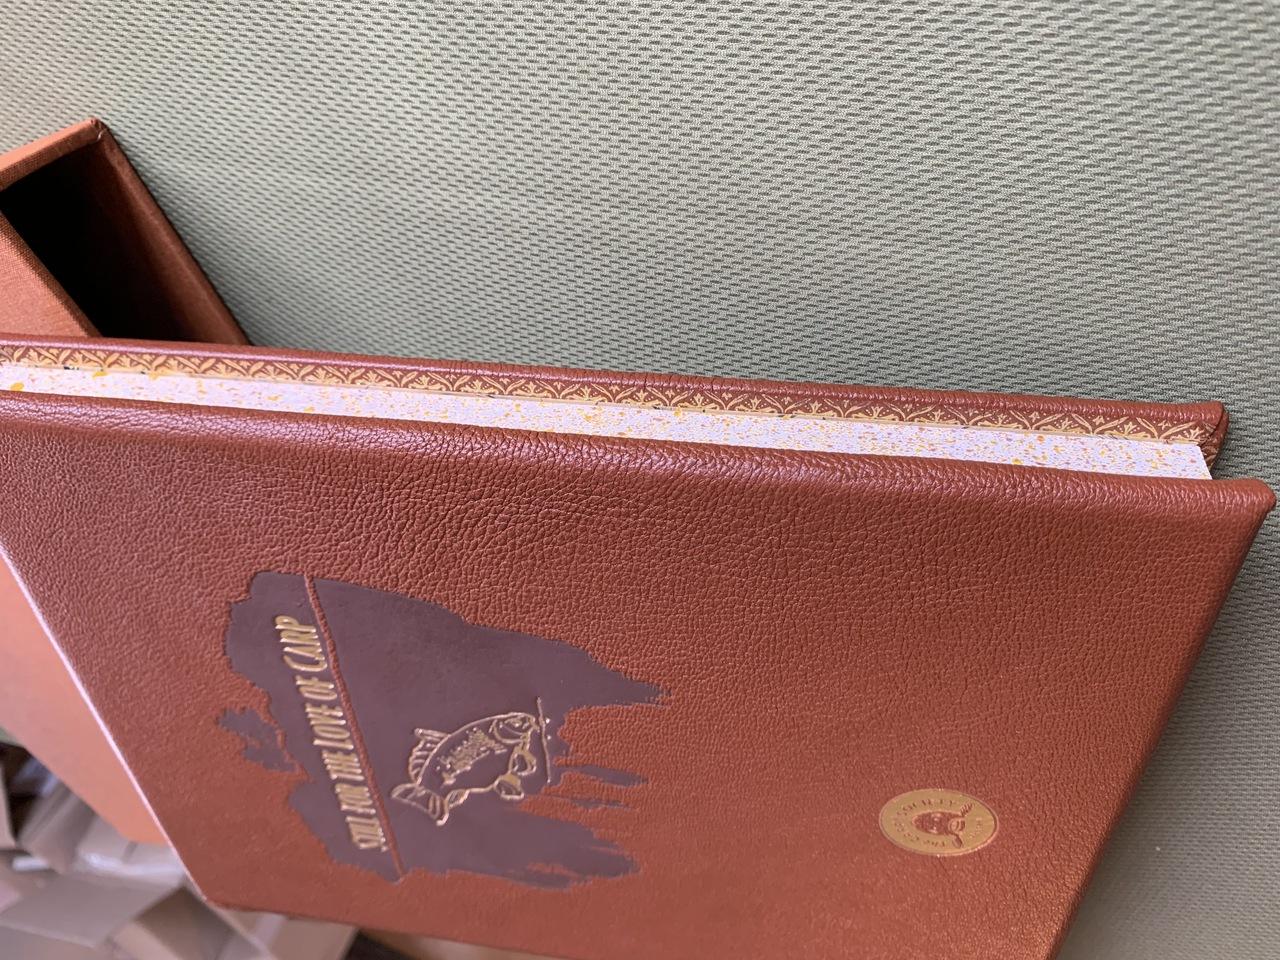 LEATHERBOUND - Still for the love of Carp **limited edition